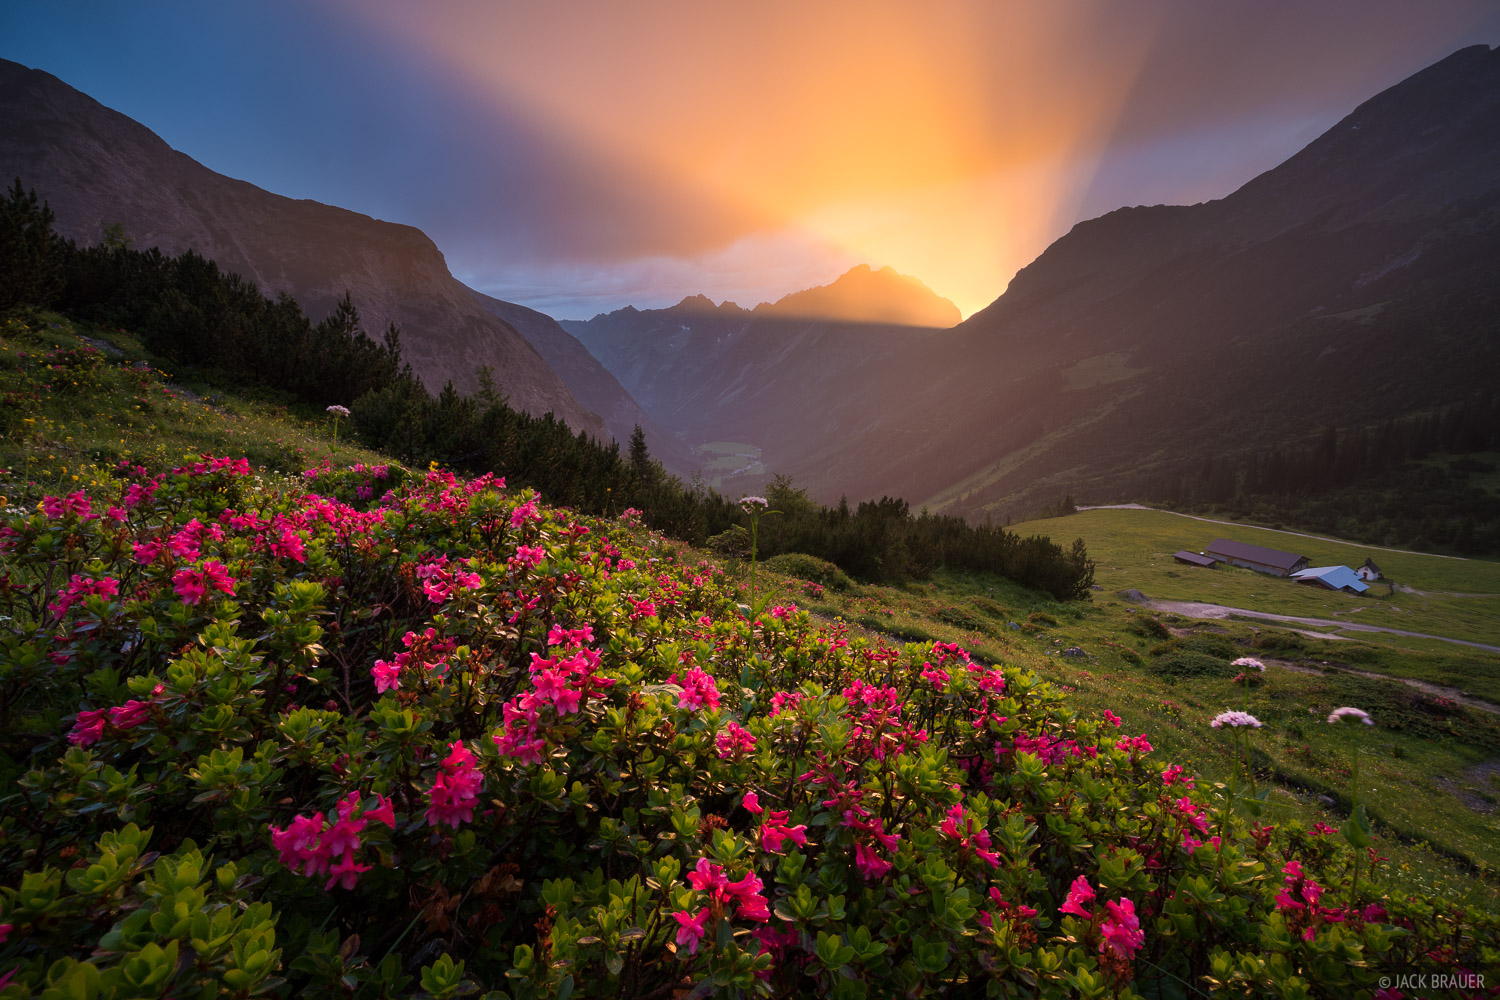 Austria, Karwendel, Karwendeltal, wildflowers, Alps, photo